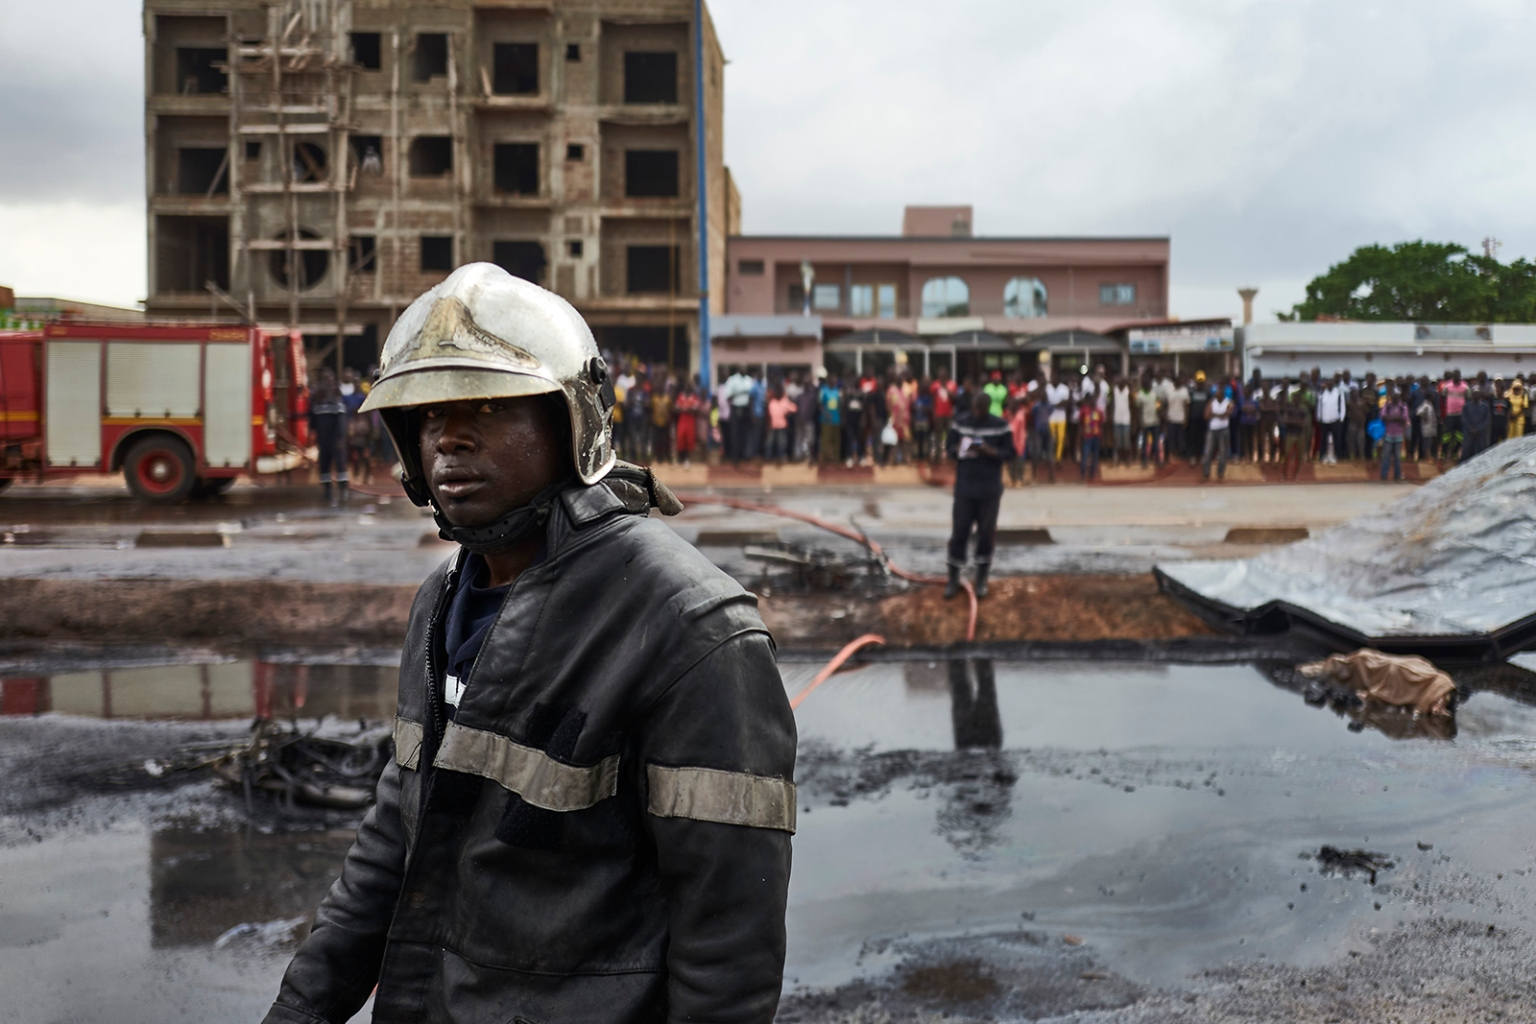 A firefighter stands at the scene of a car accident involving a fuel tank truck that caught fire when people tried to lift it, killing at least five people and injuring 15, in central Bamako, Mali, on Sept. 24. MICHELE CATTANI/AFP/Getty Images